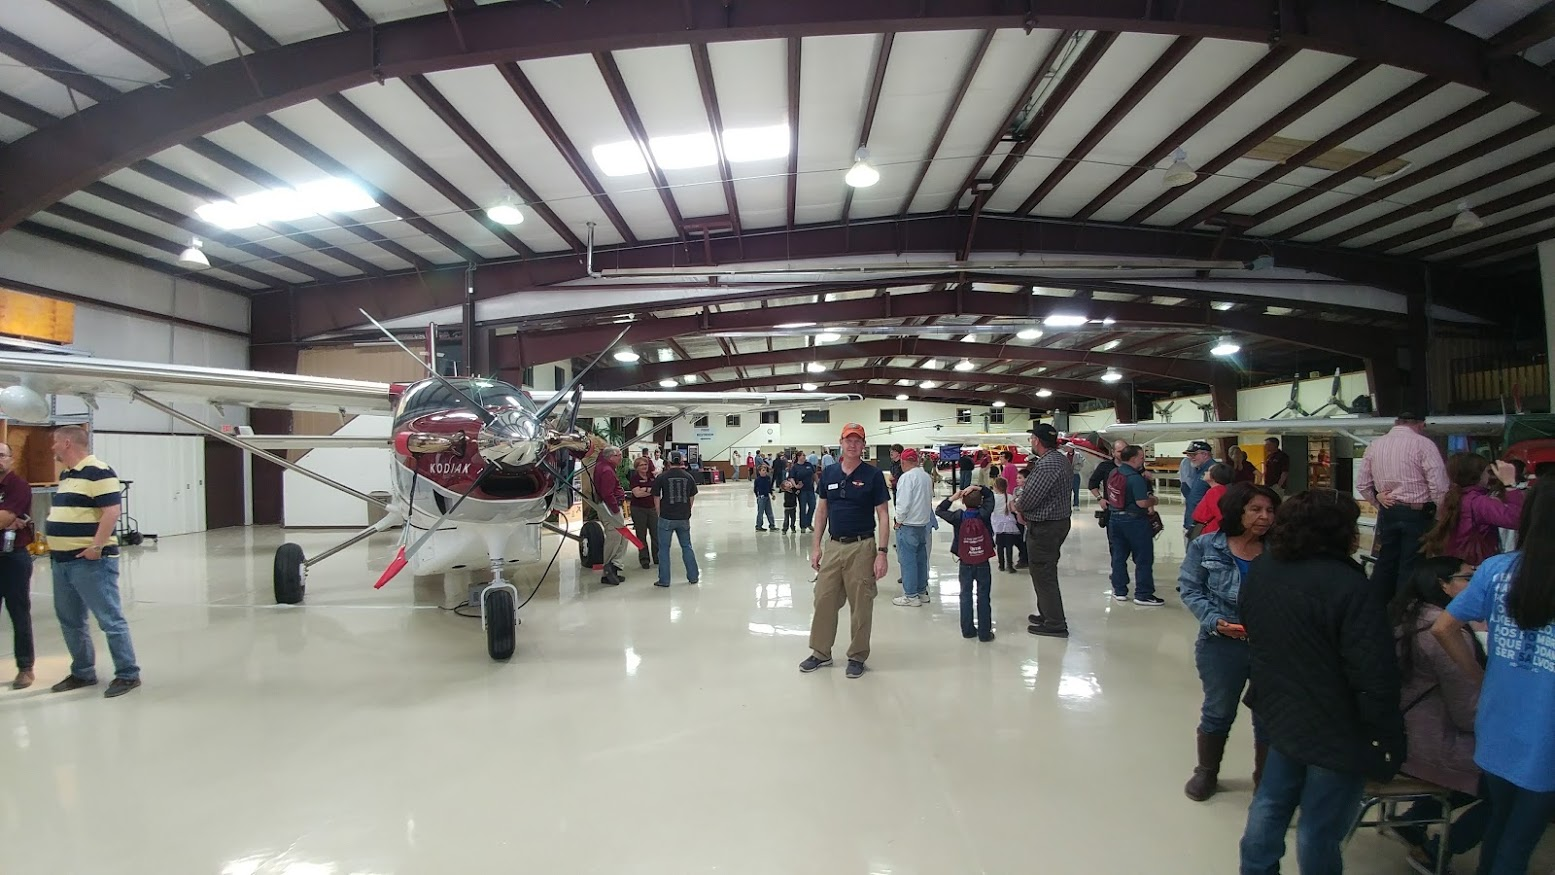 2017-02-04_new-tribes-mission-aviation-open-house3.jpg